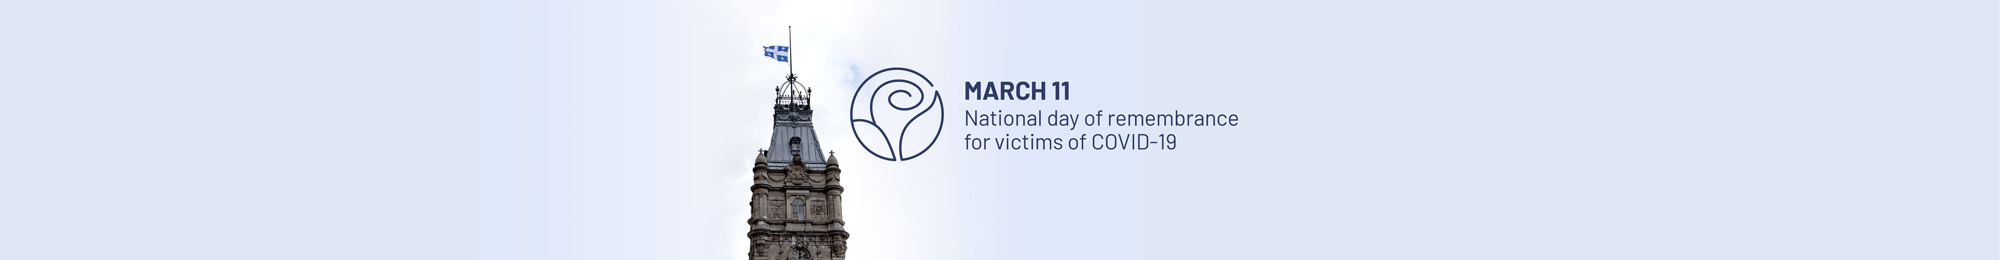 March 11 - National day of remembrance for victims of COVID-19